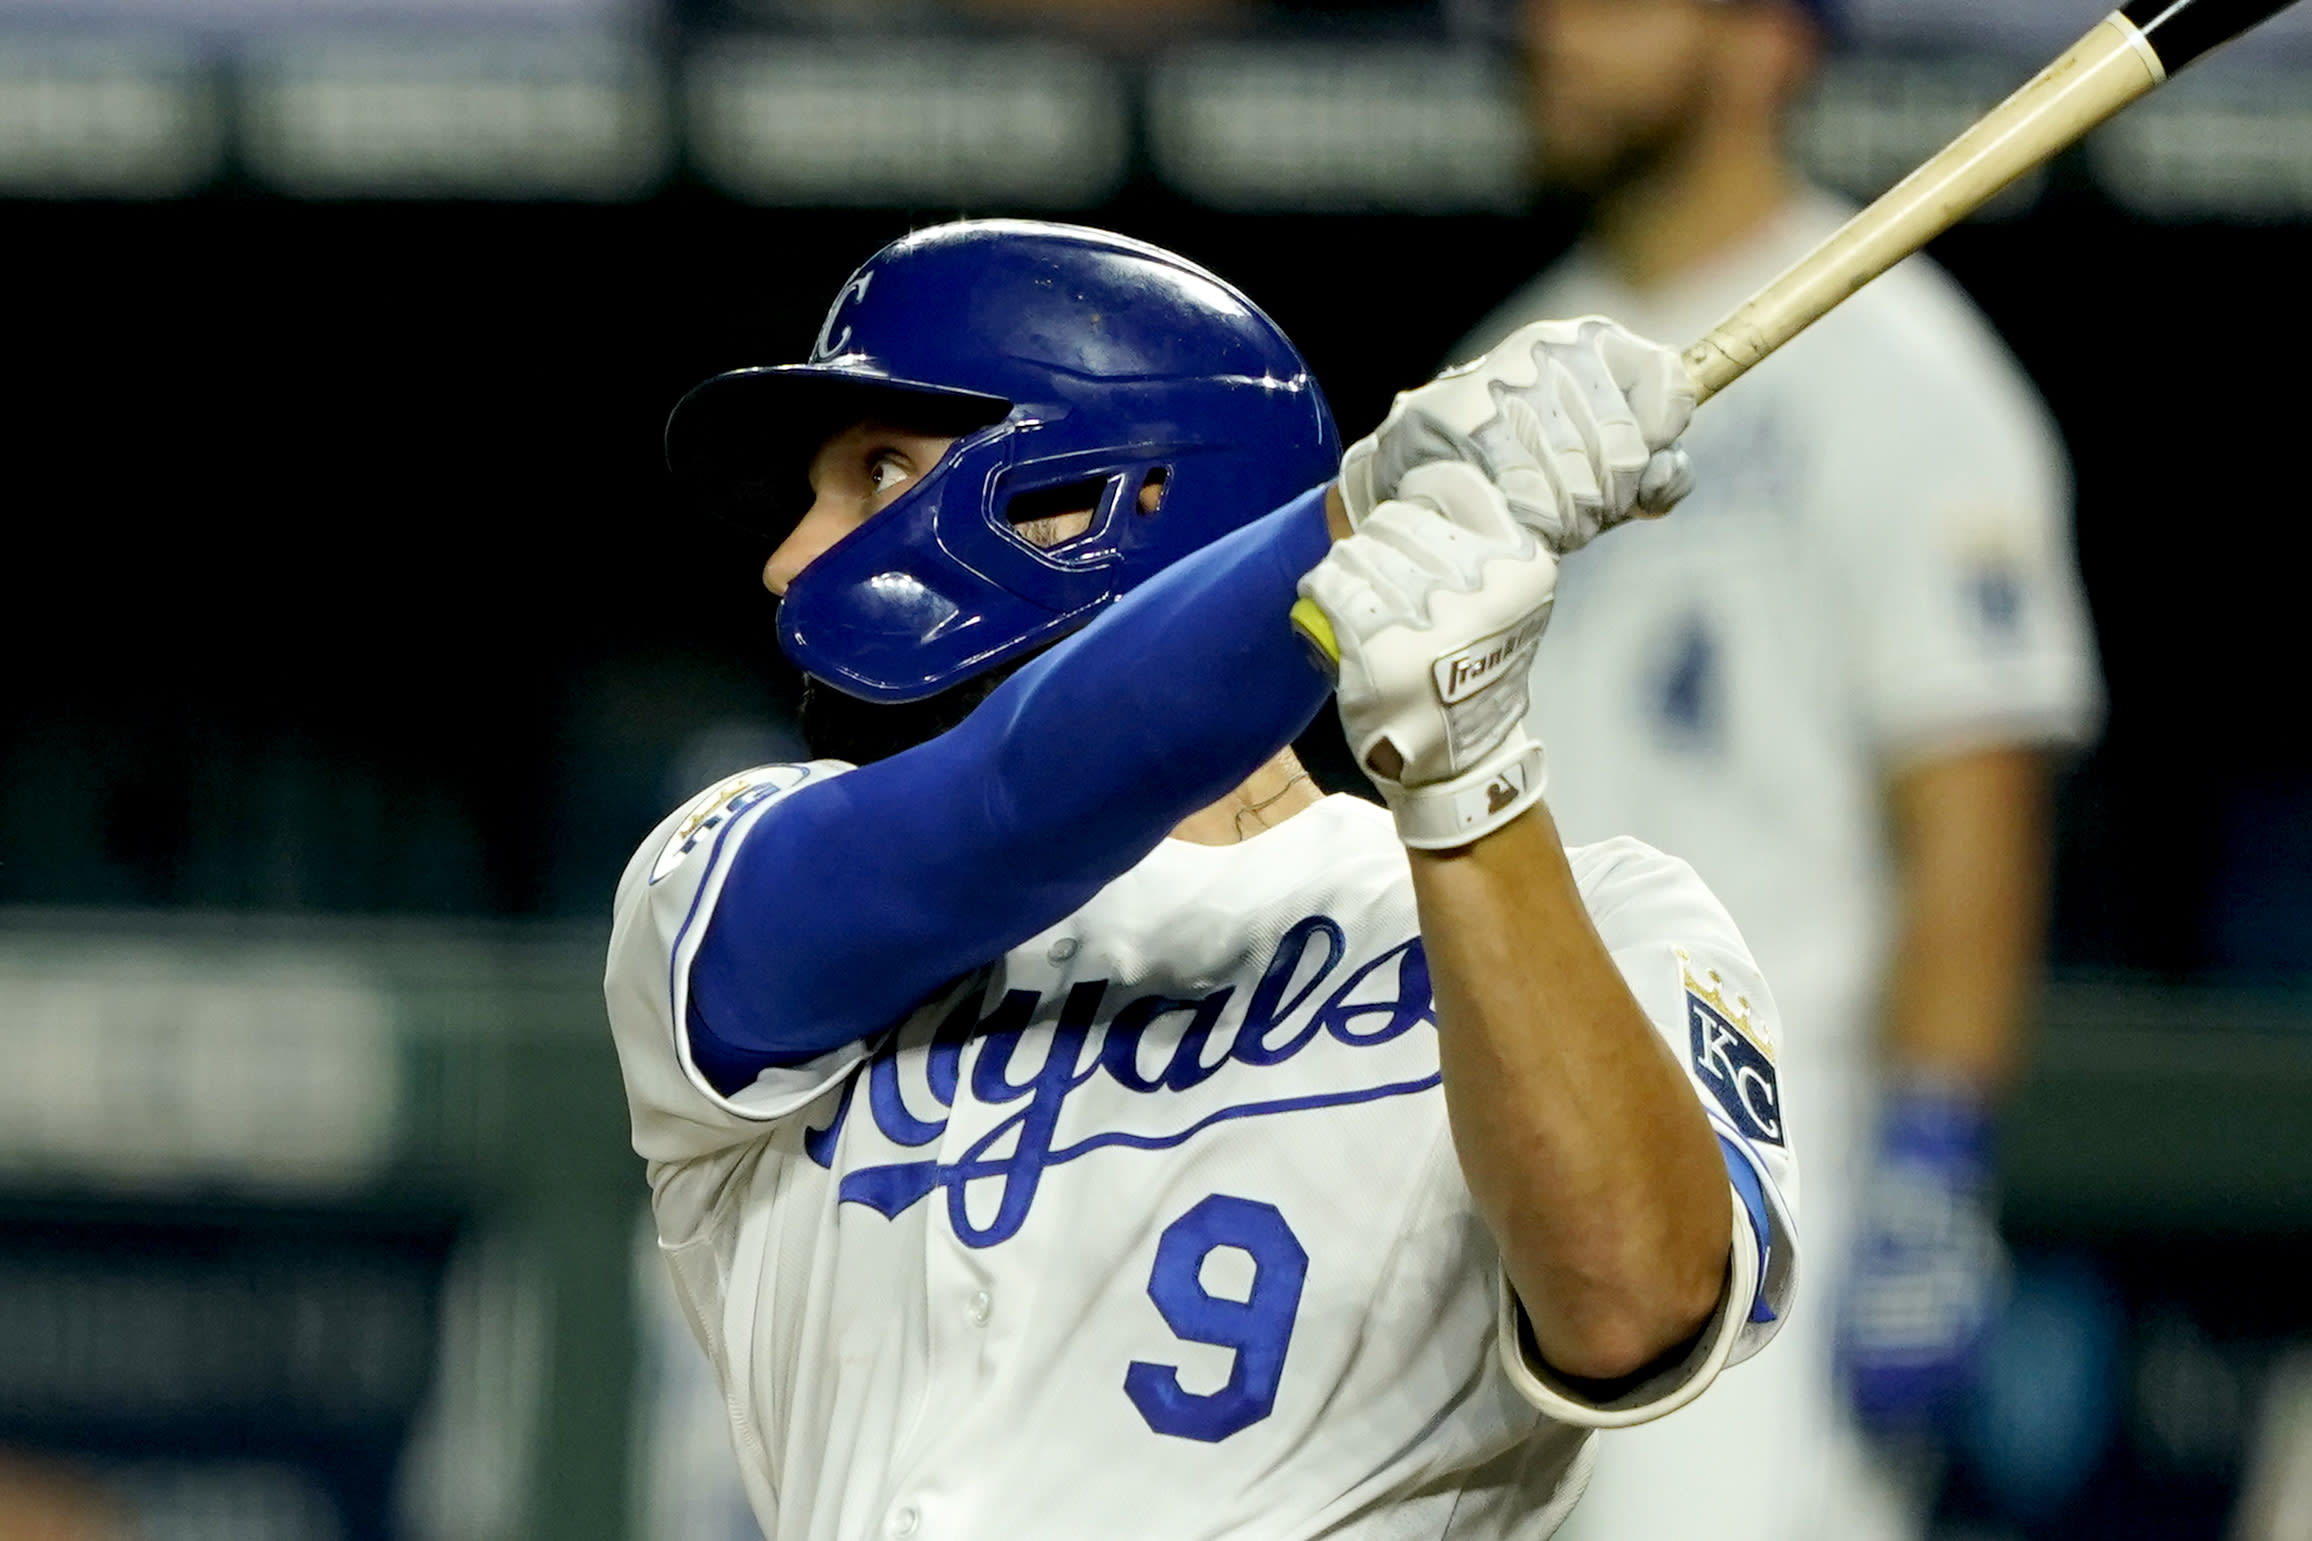 Kansas City Royals' Ryan McBroom hits a solo home run during the sixth inning of a baseball game against the Chicago White Sox Friday, July 31, 2020, in Kansas City, Mo. (AP Photo/Charlie Riedel)